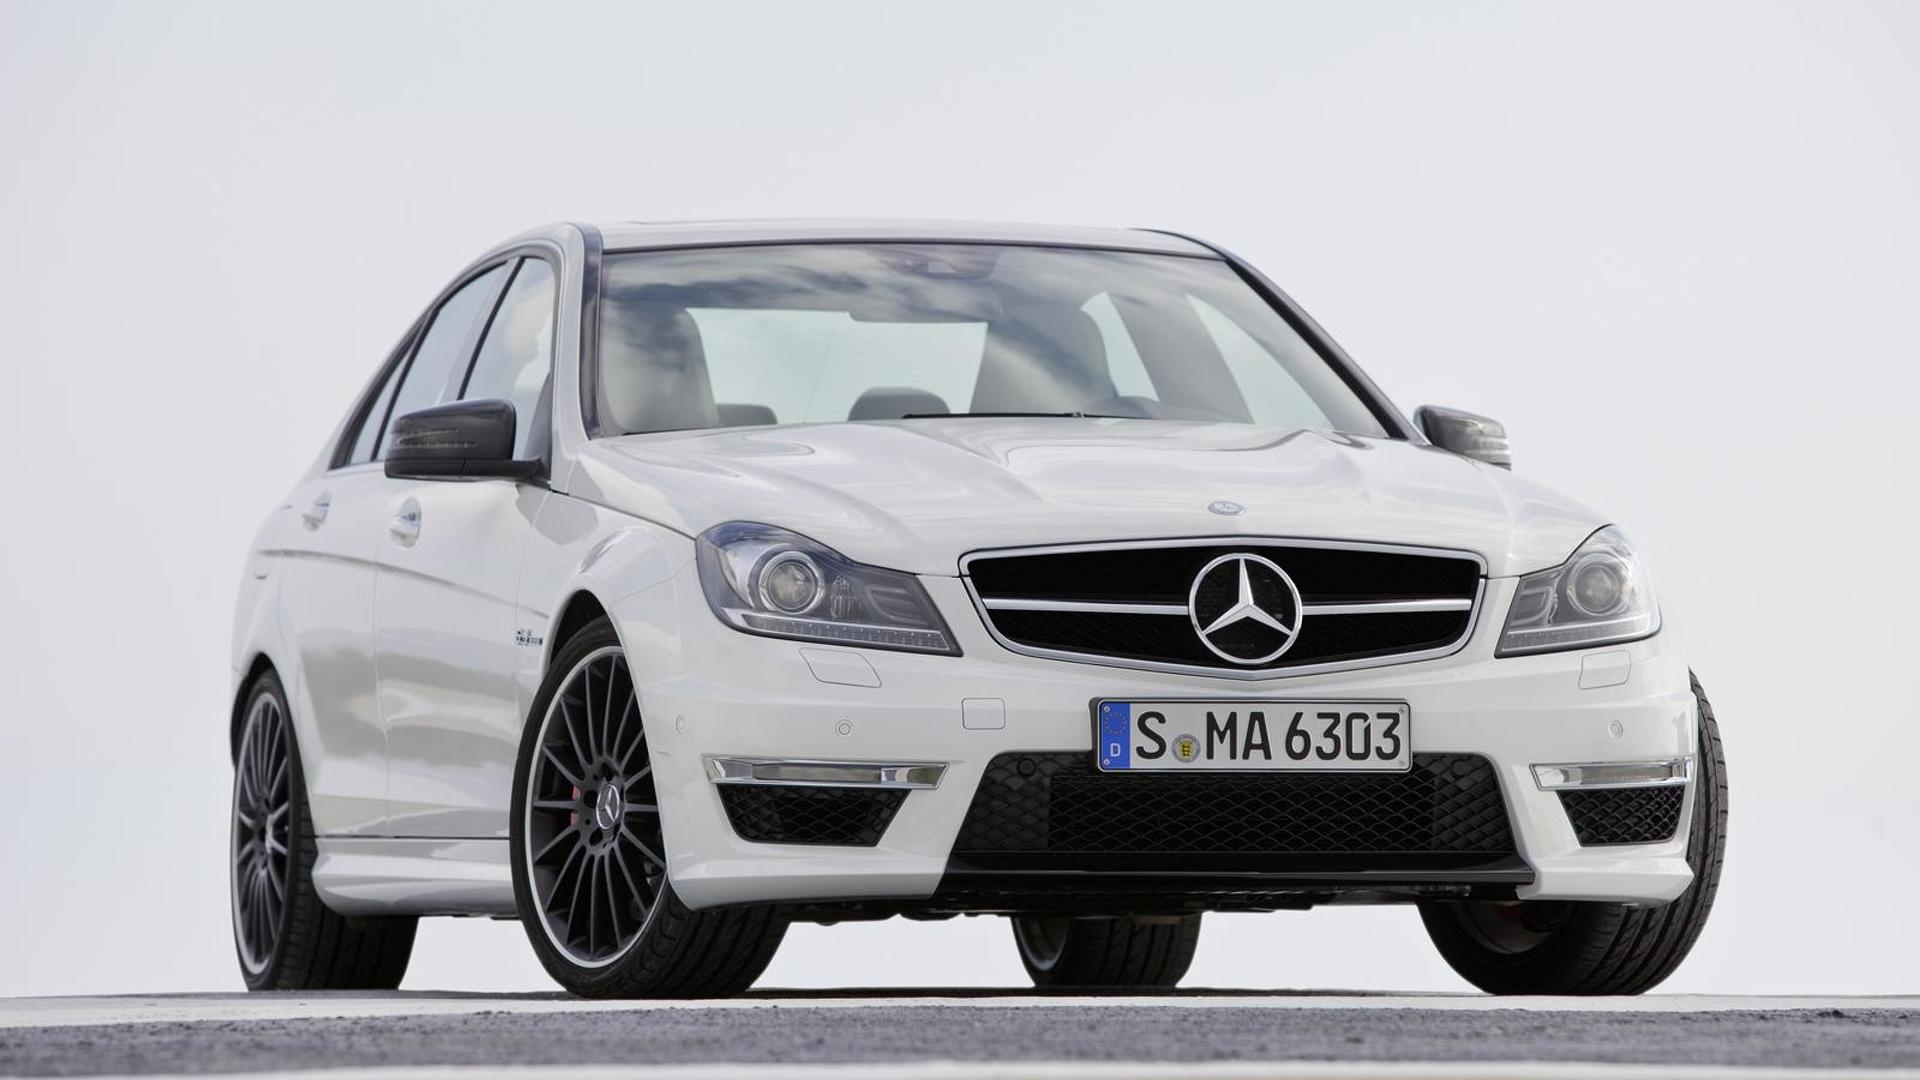 2012 Mercedes C63 AMG officially unveiled